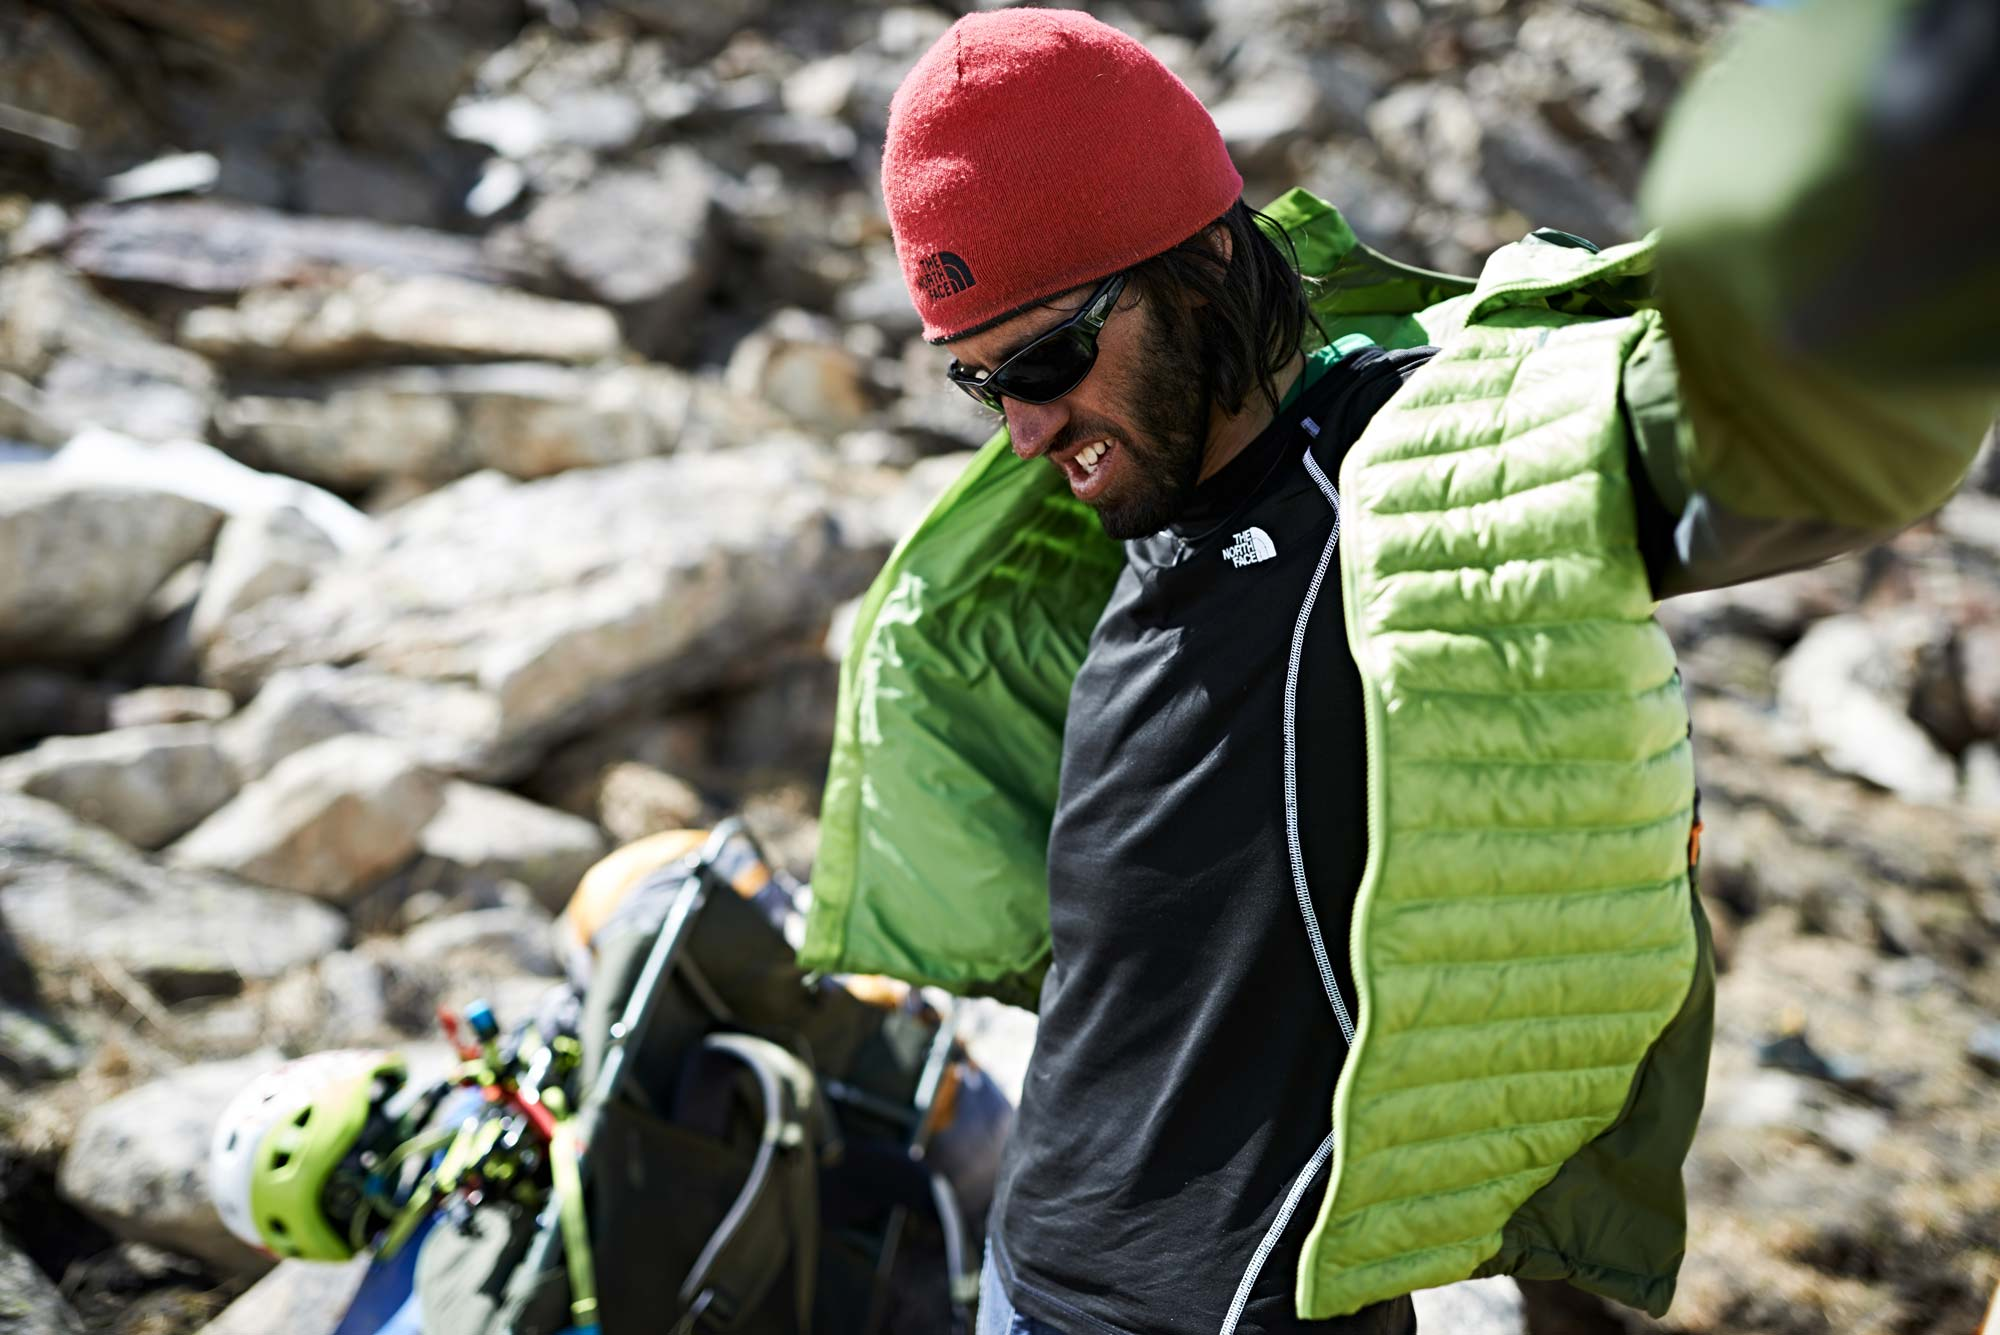 MANUEL FERRIGATO ON EXPEDITION